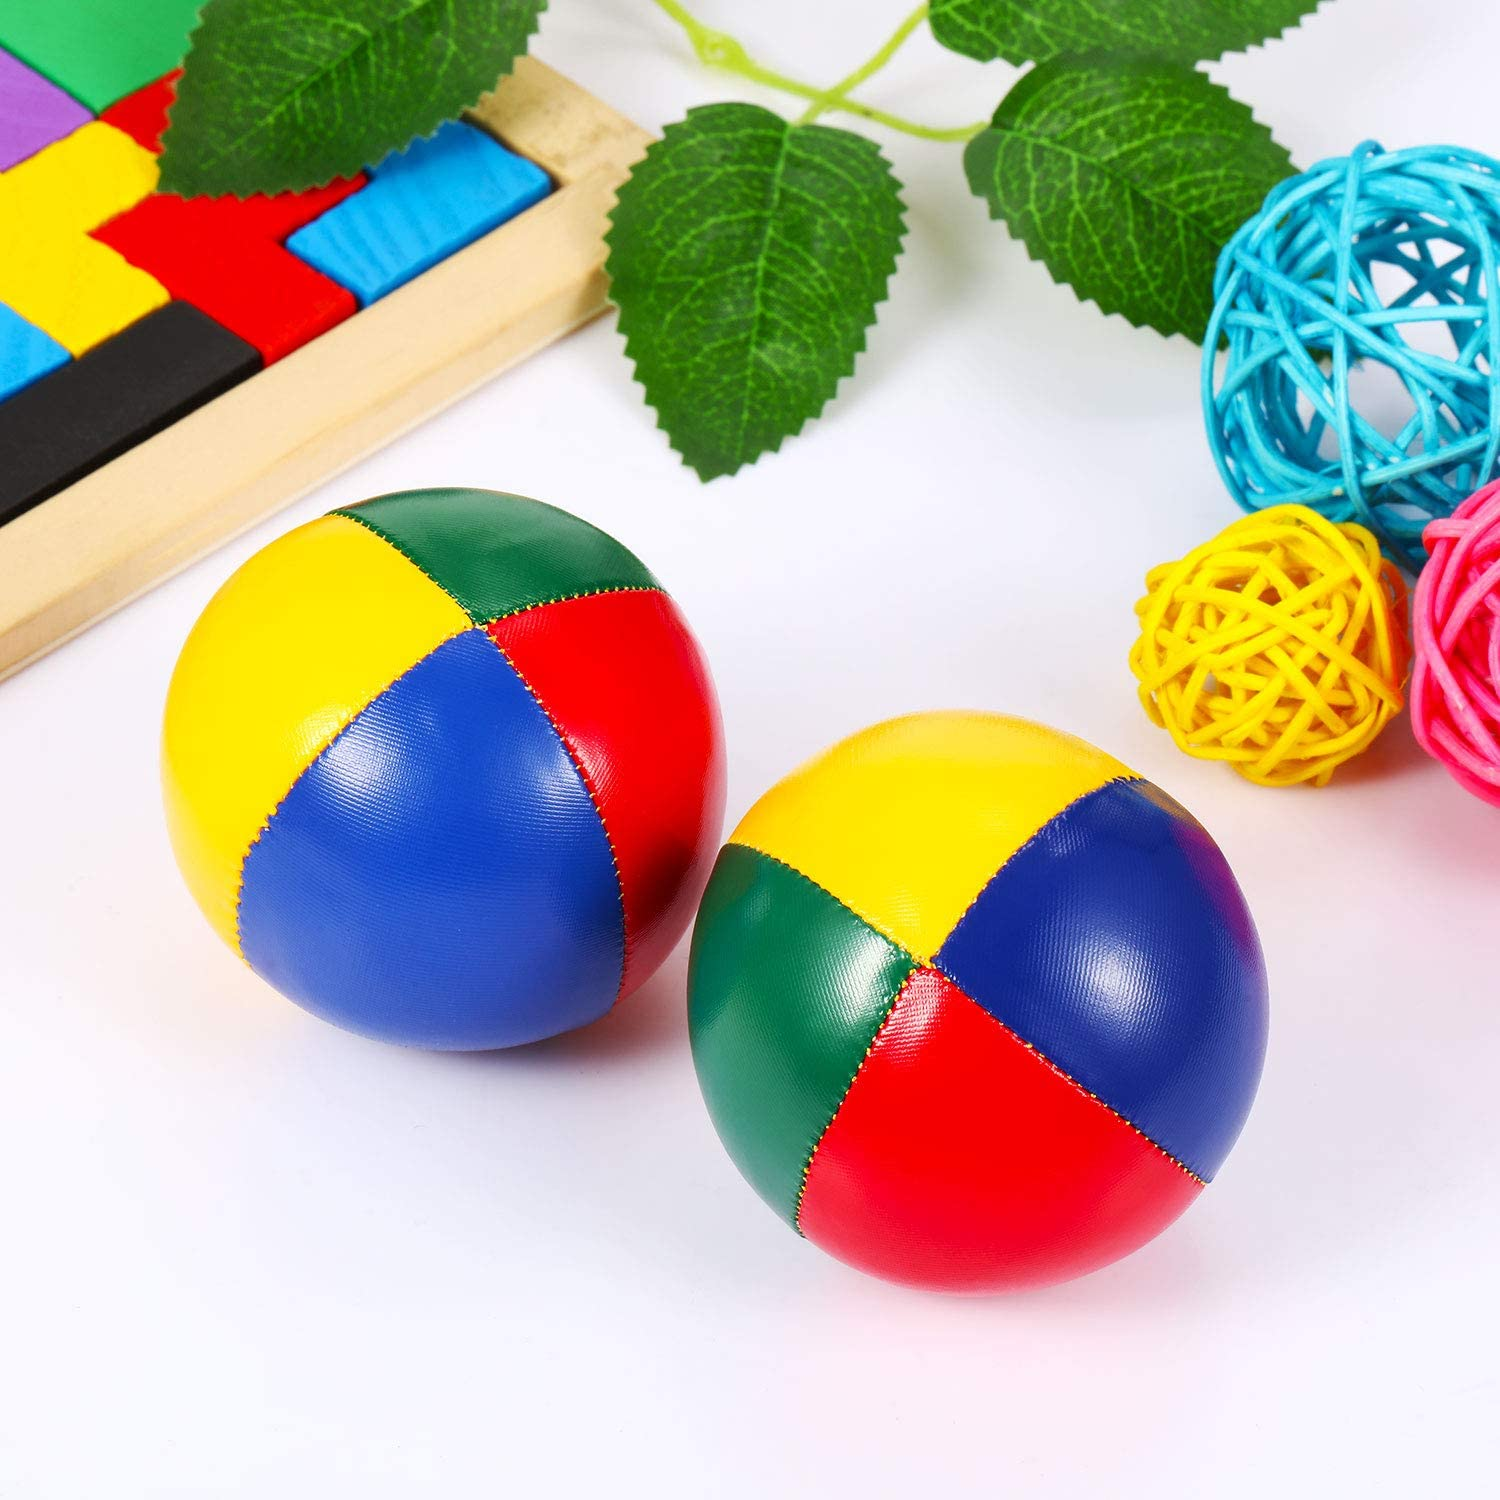 Light and Soft Juggle Balls Goodie Bag Fillers Juggling Balls for Beginners Soft Juggle Balls for Kids and Adults Playko 2.5 Inch Juggling Balls Pack of 3 Multicolored Juggling Balls Set